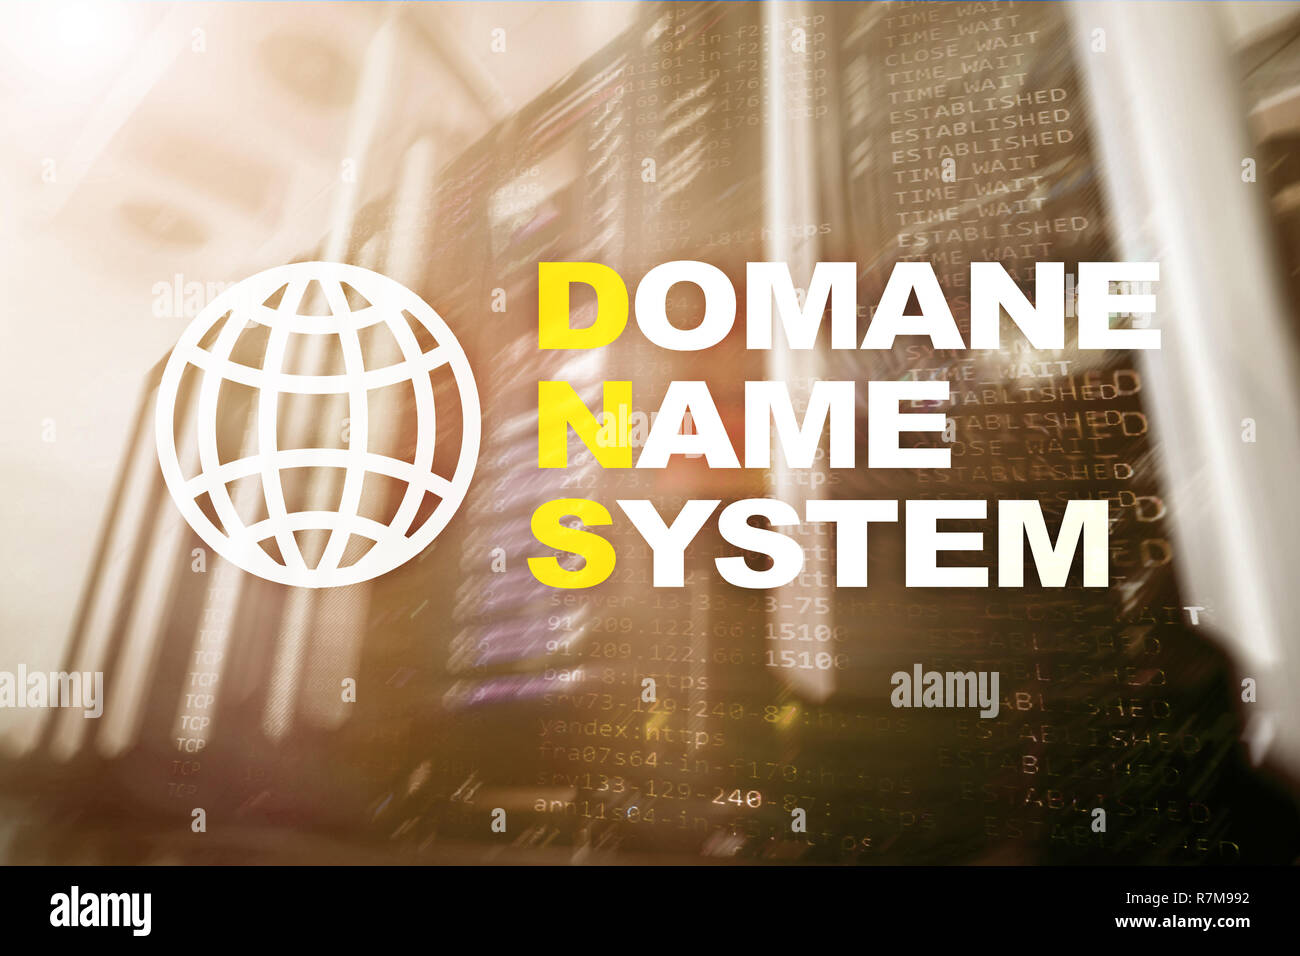 Internet Connection Word Diagram Concept Stock Photos Dns Domain Name System Server And Protocol Digital Technology On